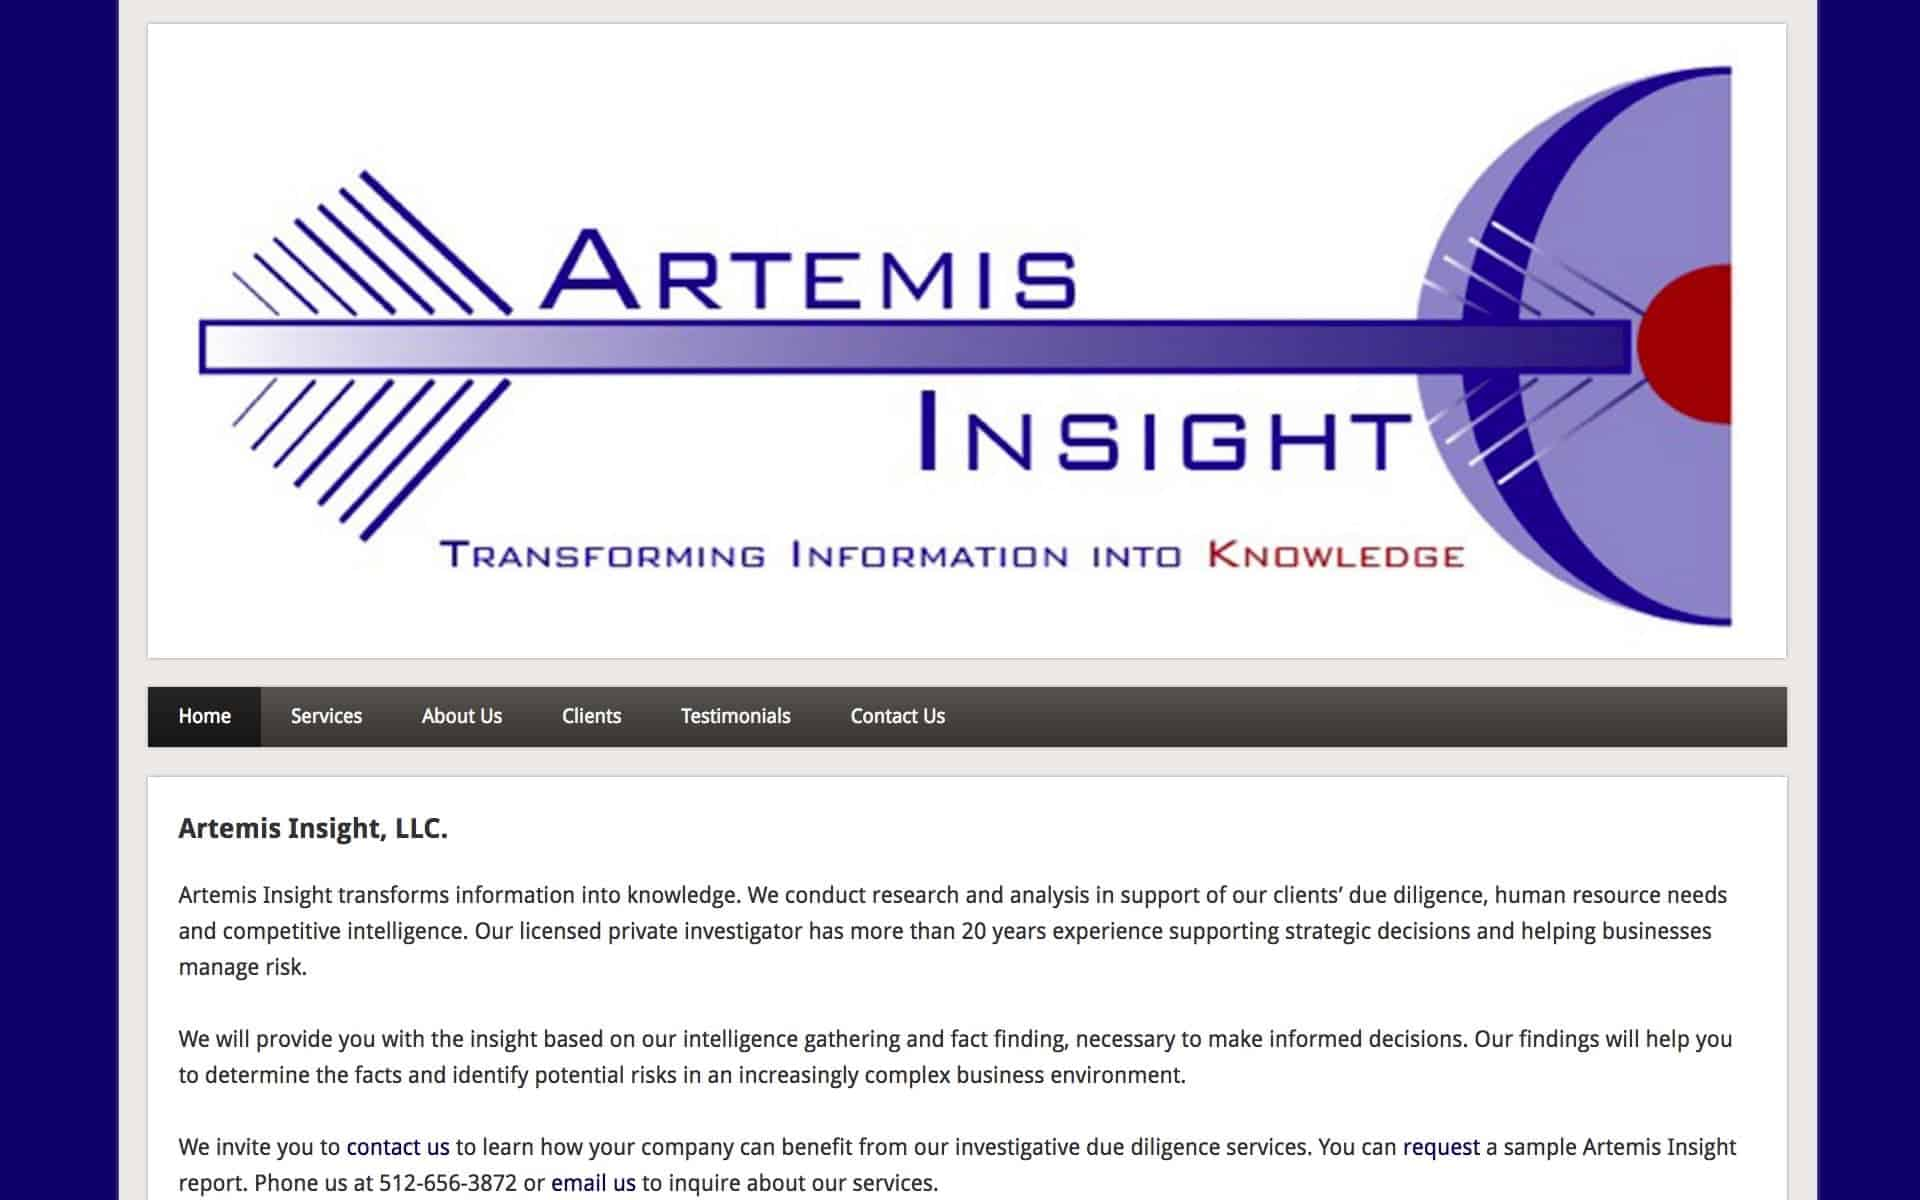 screenshot of website on iMac - Artemis Insight